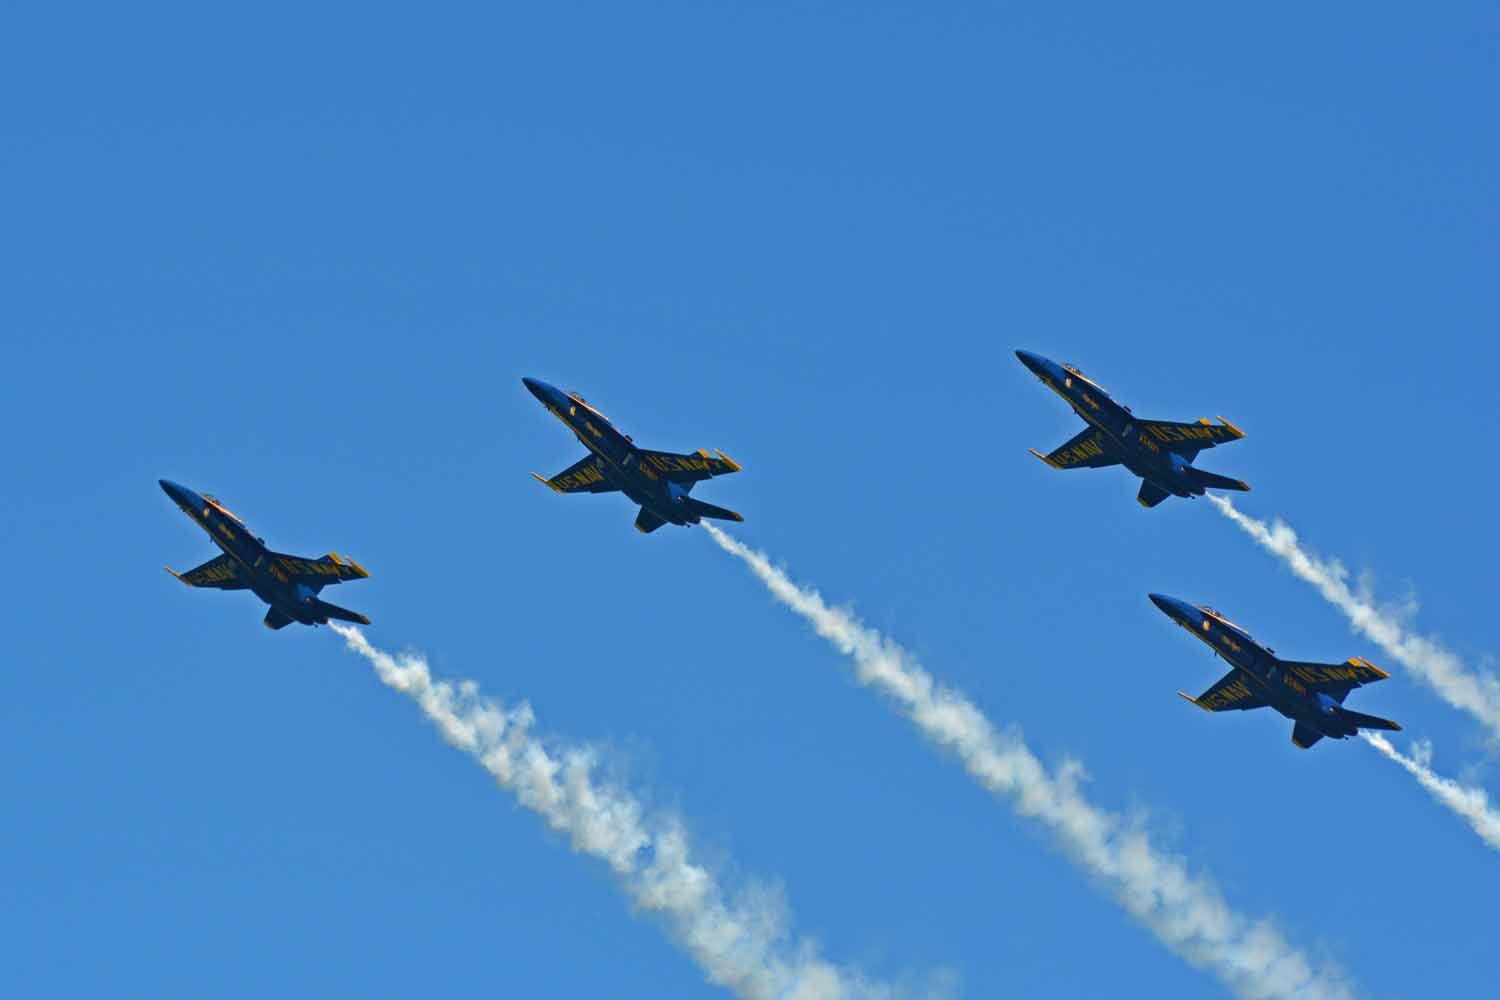 This year we did all three shows for the Blue Angels...